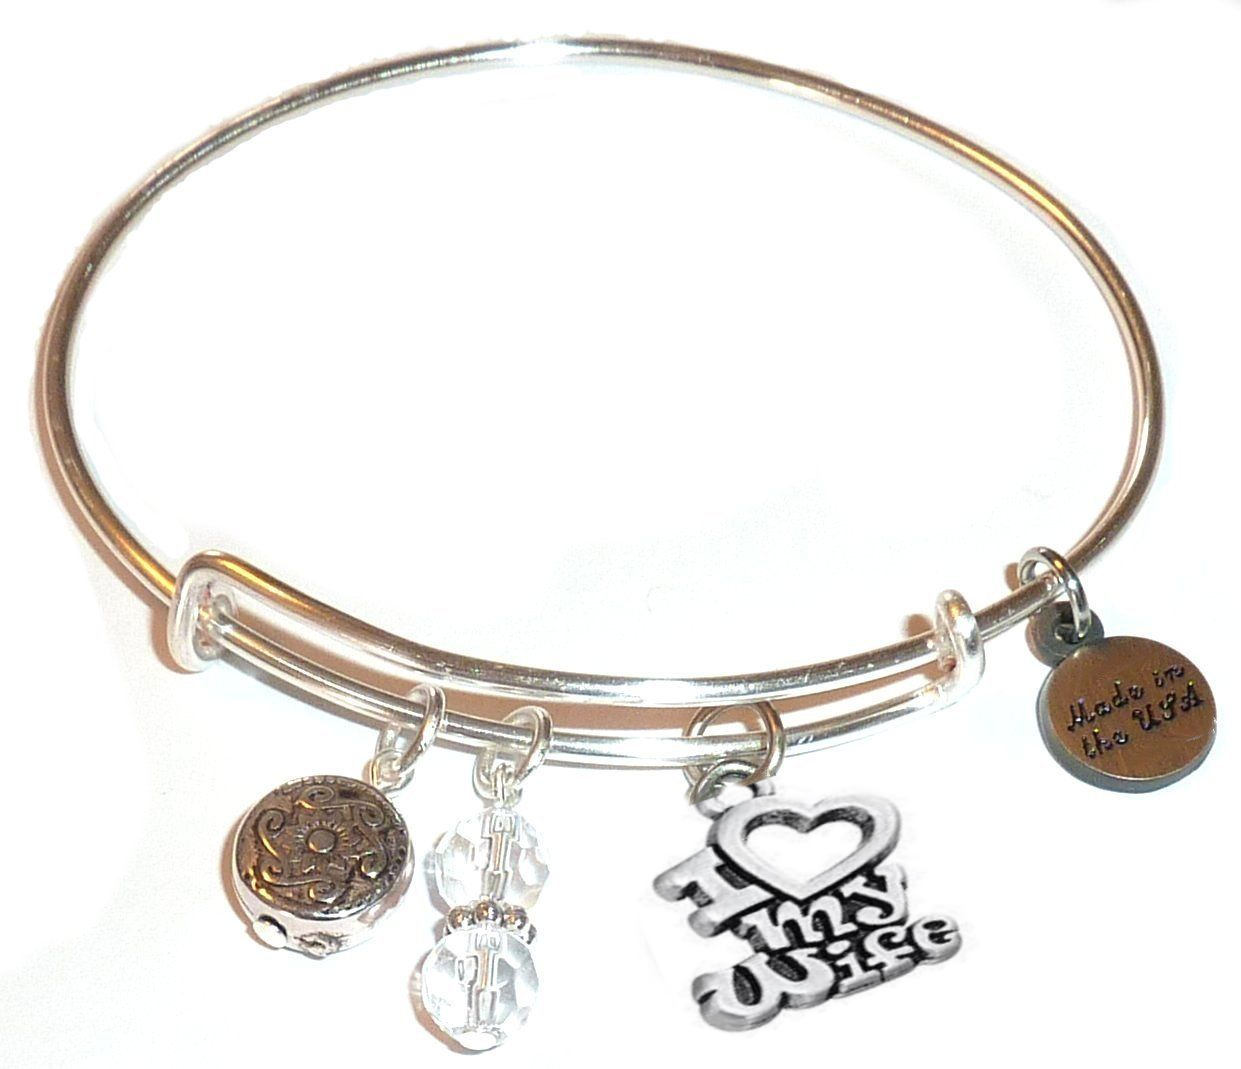 Spring gift guide - I love my wife bangle bracelet